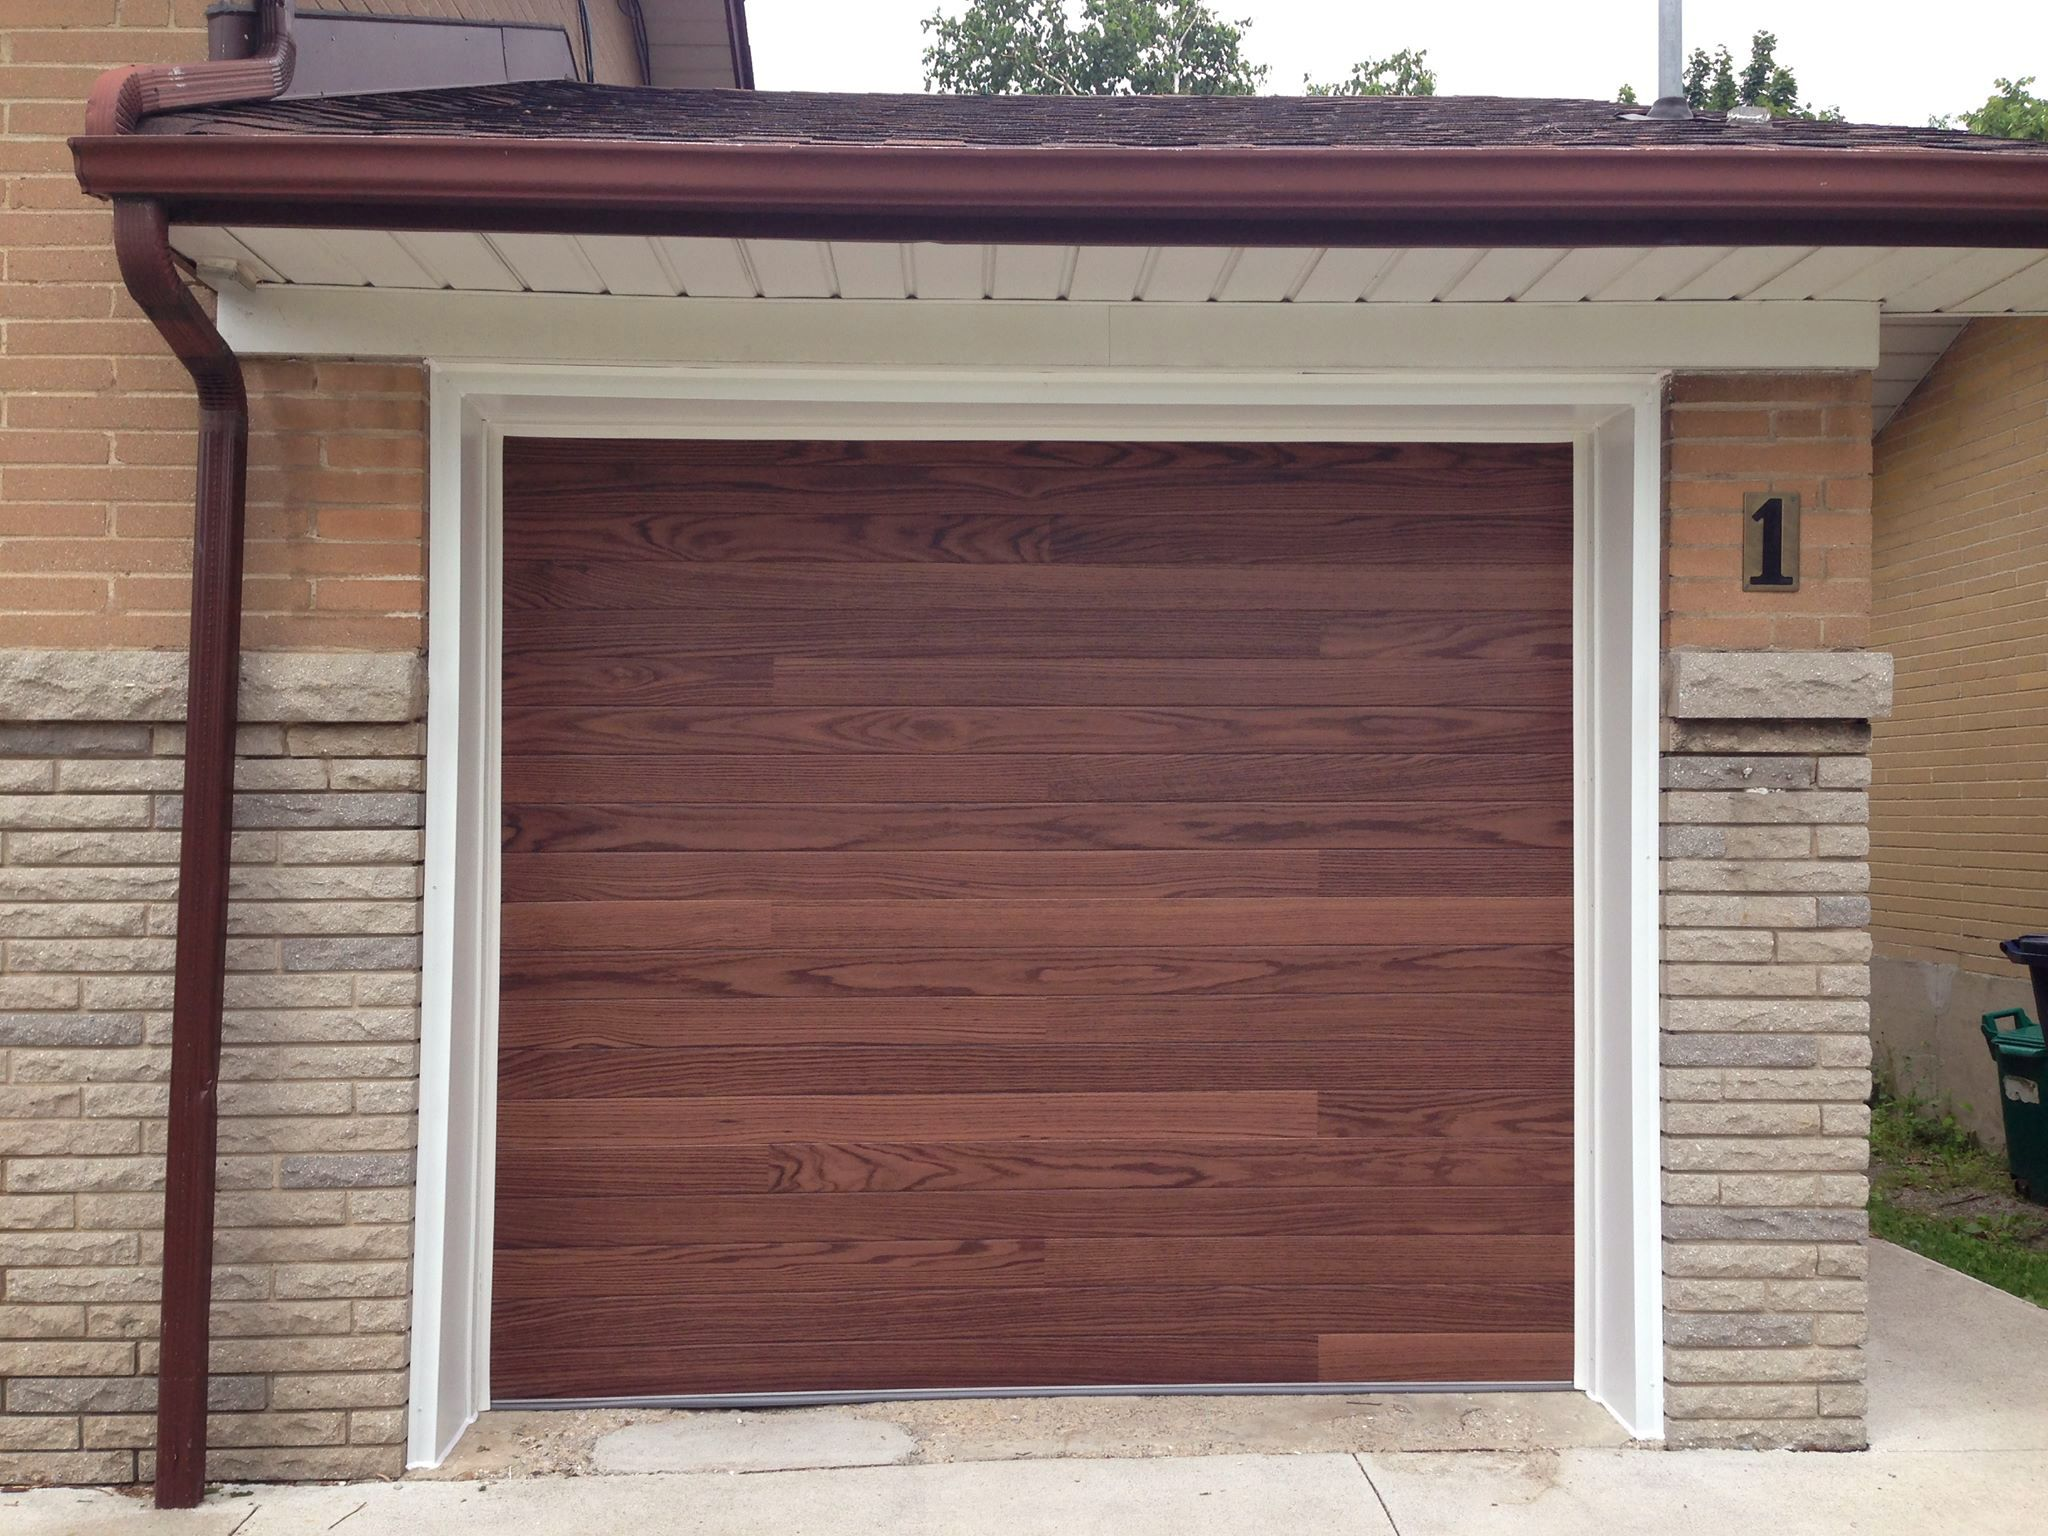 C H I Overhead Doors Accents Planks Model 3216 In Dark Oak Www Chiohd Com Garage Doors Doors Accent Doors